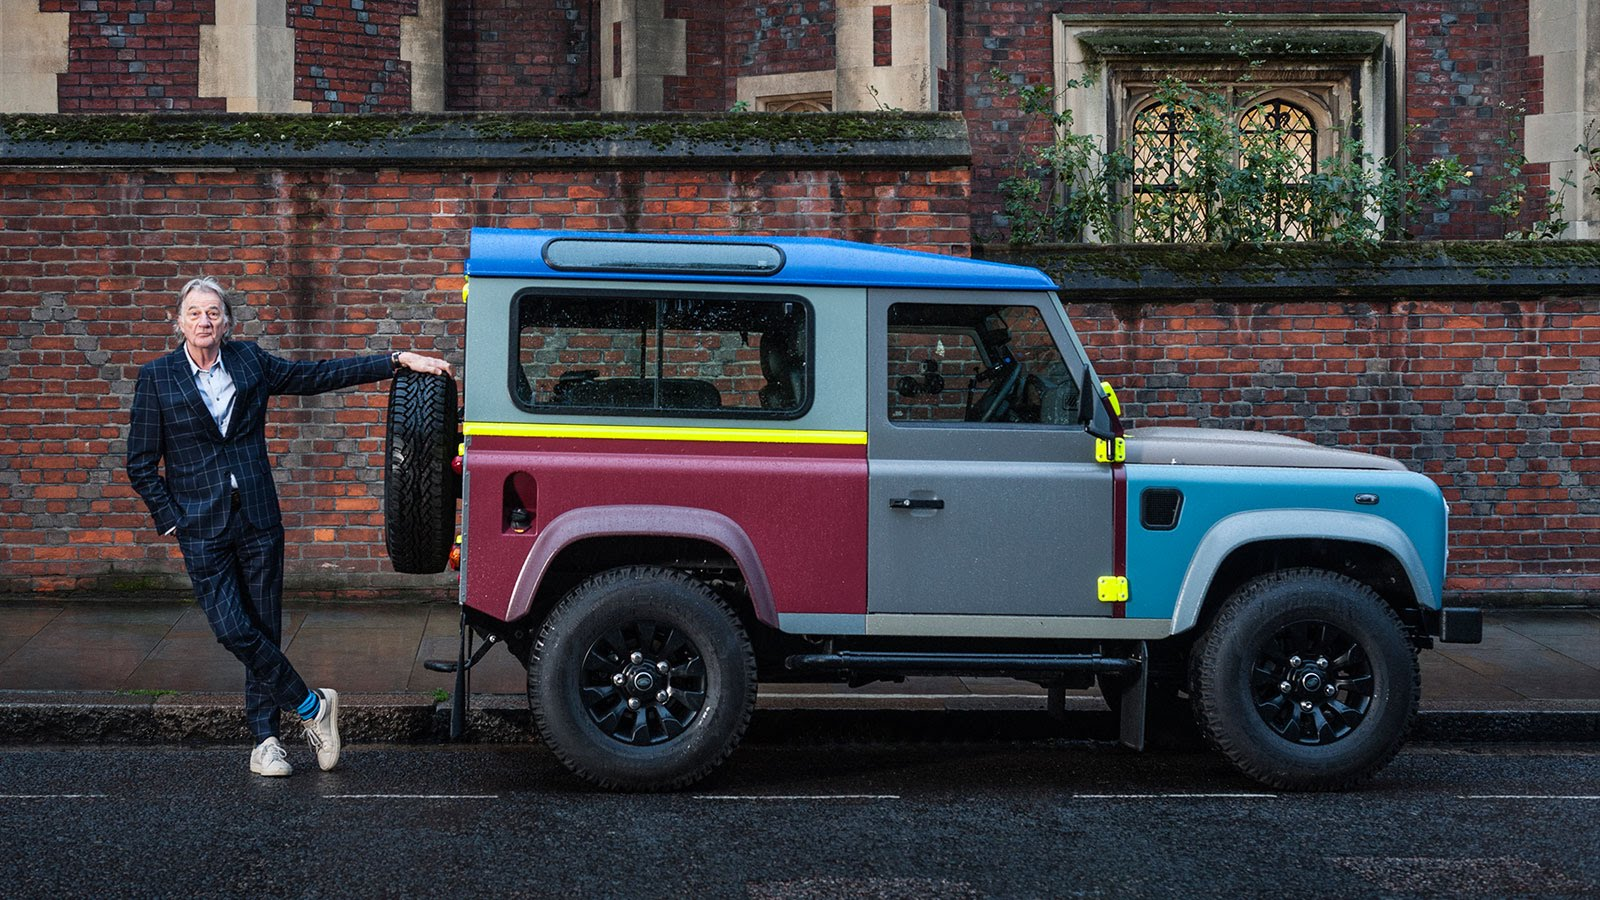 Used Land Rover Defender >> Paul Smith x Land Rover Defender | nigelclare.com